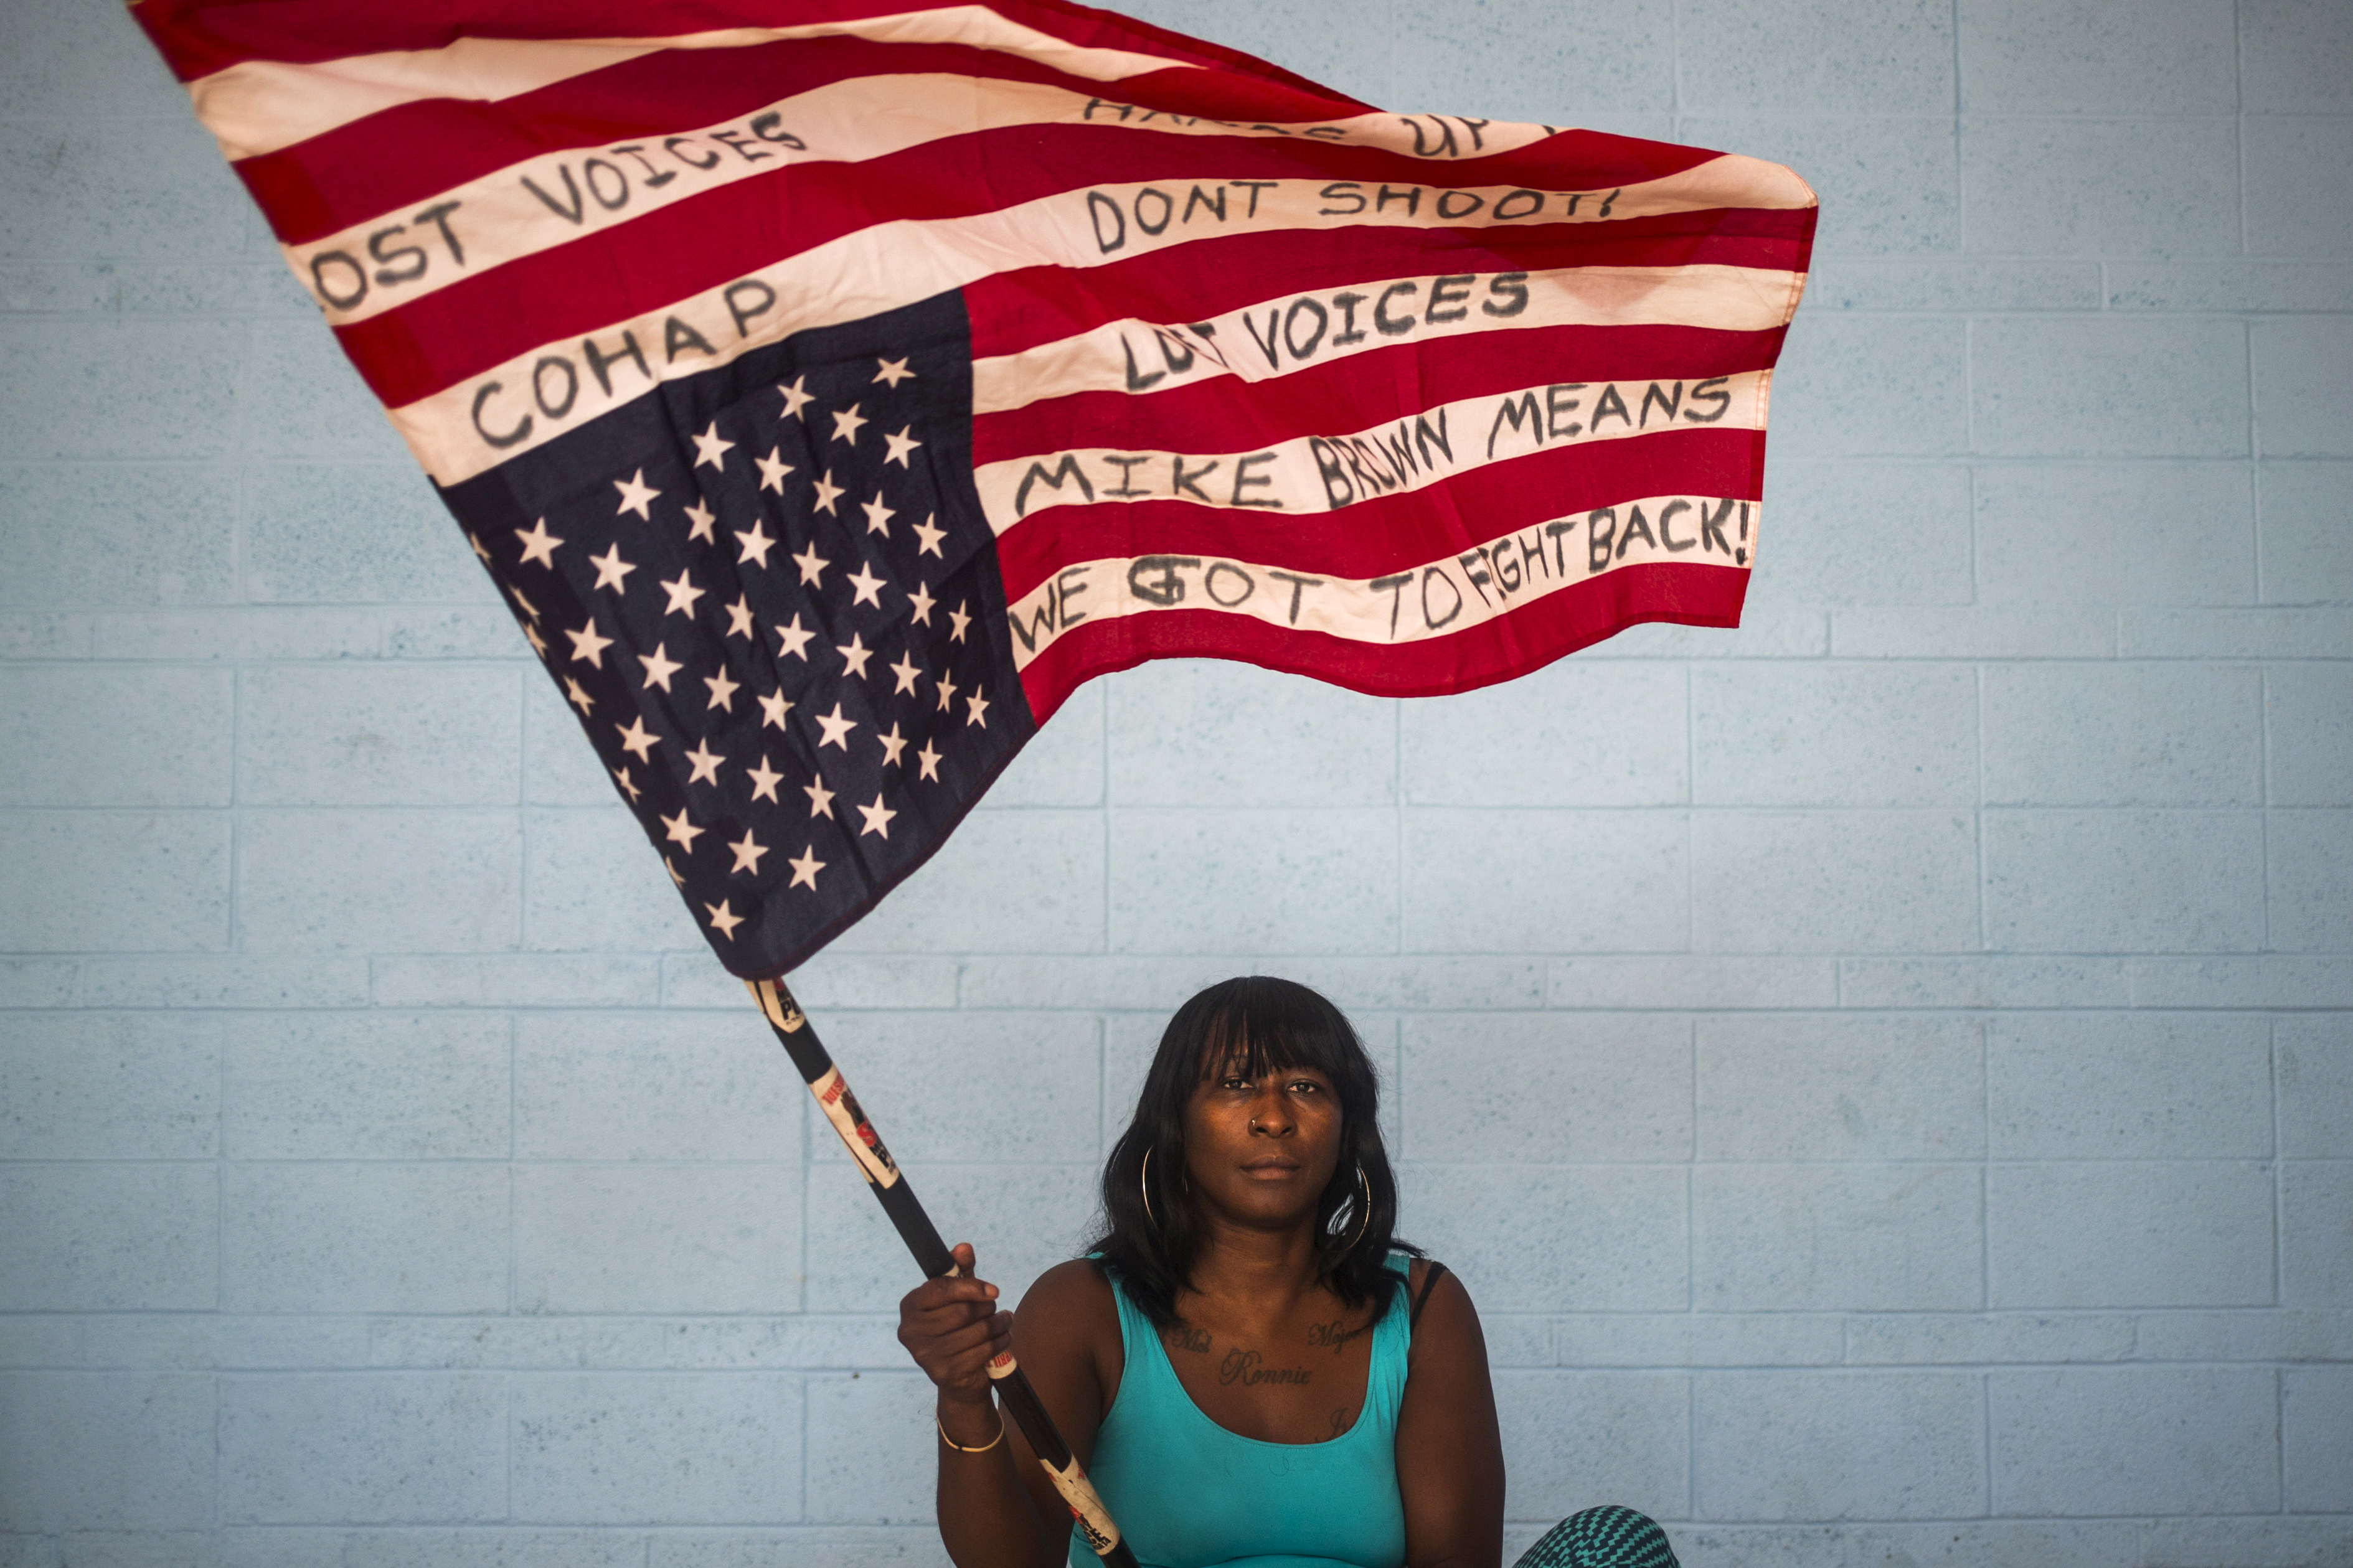 "Chocolate, 36, an activist who wants to be identified by only her nickname, waves an American flag upside down while posing for a portrait in Ferguson, Missouri July 24, 2015. When asked how Michael Brown's death affected her life, Chocolate said, ""My life won't ever be the same. It has changed me to become an activist and protester. It has made me to get more involved with my community and especially with youth. When you ask a kid these days what they want to be when they grow up, their answer is ""I want to be alive."" When asked what changes she has seen in her community over the past year, Chocolate said, ""We are all still trying to heal. There are still a lot of racist cops here. We can do what we do which is stand up for justice. No one has accepted what happened out here. There is still a disconnect with the police and the community."" The message on the flag reads: Hands up, don't shoot. Lost voices. Mike Brown means we got to fight back! On August 9, 2014 a white police officer shot unarmed black teenager Michael Brown dead in the St. Louis suburb of Ferguson, Missouri. A year later Reuters photographer Adrees Latif returned to Ferguson, where he has documented events in the past year, to capture the portraits of local residents and canvass their views. REUTERS/Adrees Latif TPX IMAGES OF THE DAYPICTURE 6 OF 13 FOR WIDER IMAGE STORY ""PORTRAITS OF FERGUSON""SEARCH ""LATIF PORTRAITS"" FOR ALL PICTURES - RTX1N6N6"